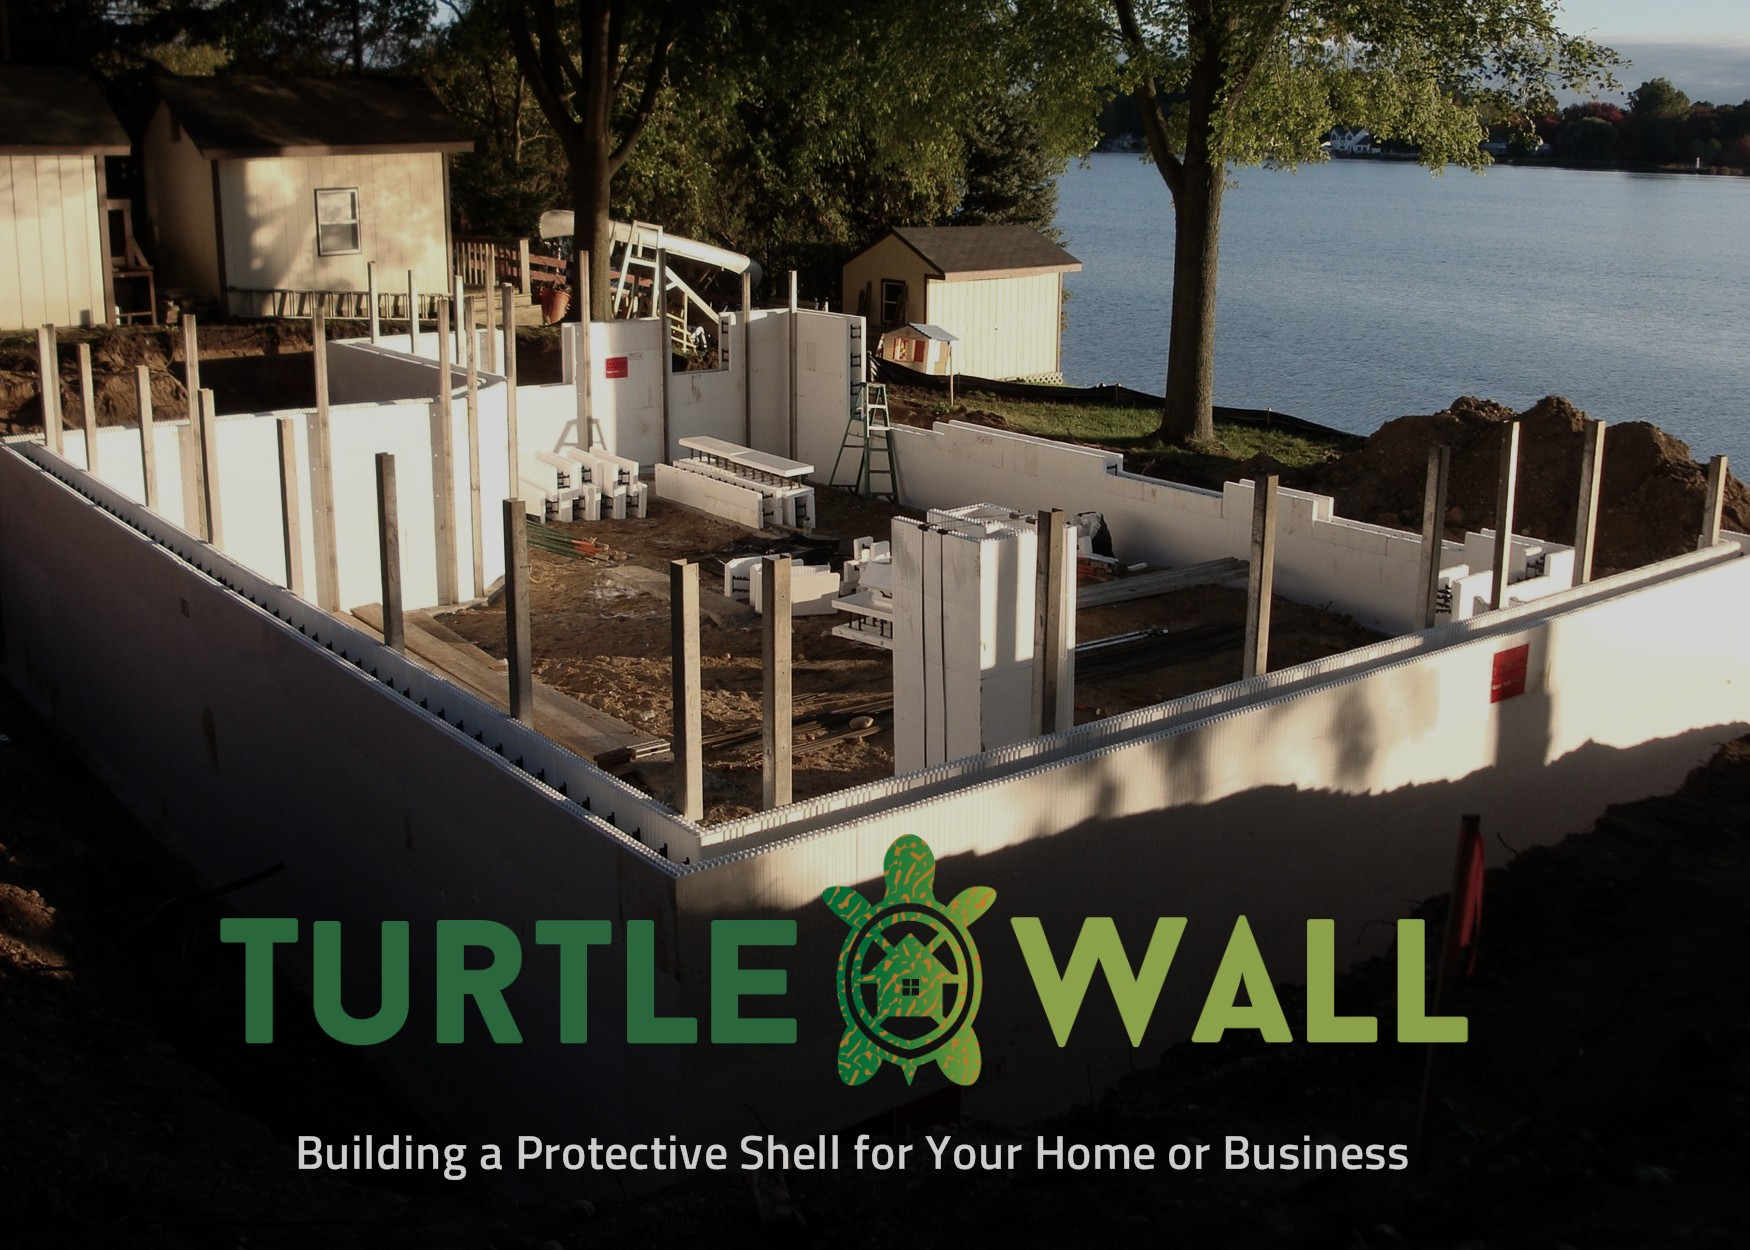 Benefits of ICF Construction in Michigan - Turtle Wall on little passive solar home plans, home building plans, indoor spanish courtyard house plans, sip home plans, hurricane home plans, timberframe home plans, nudura home plans, concrete foundation plans, panelized home plans, green home plans, zero energy home plans, inner courtyard home plans, chimney building plans, masonry home plans, net zero home plans, country living home plans, compact home plans, small house plans, wooden home plans, insulated concrete forms home plans,